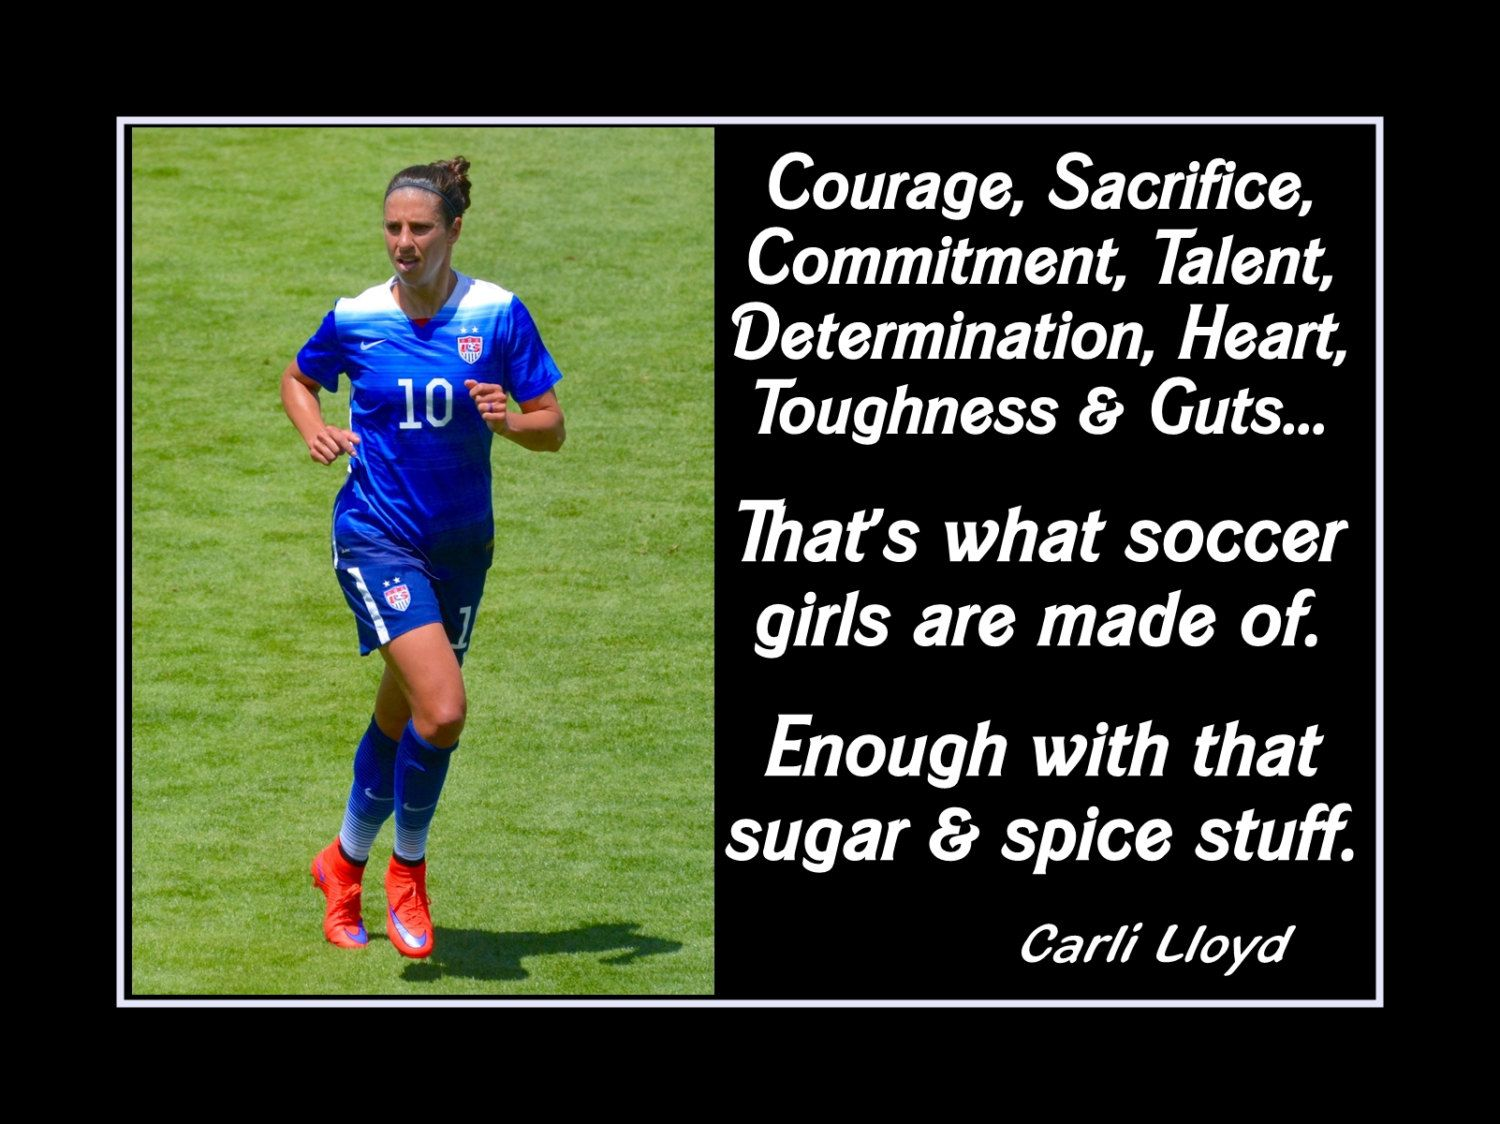 Soccer Motivation Quote Wall Art, Gift, Inspirational